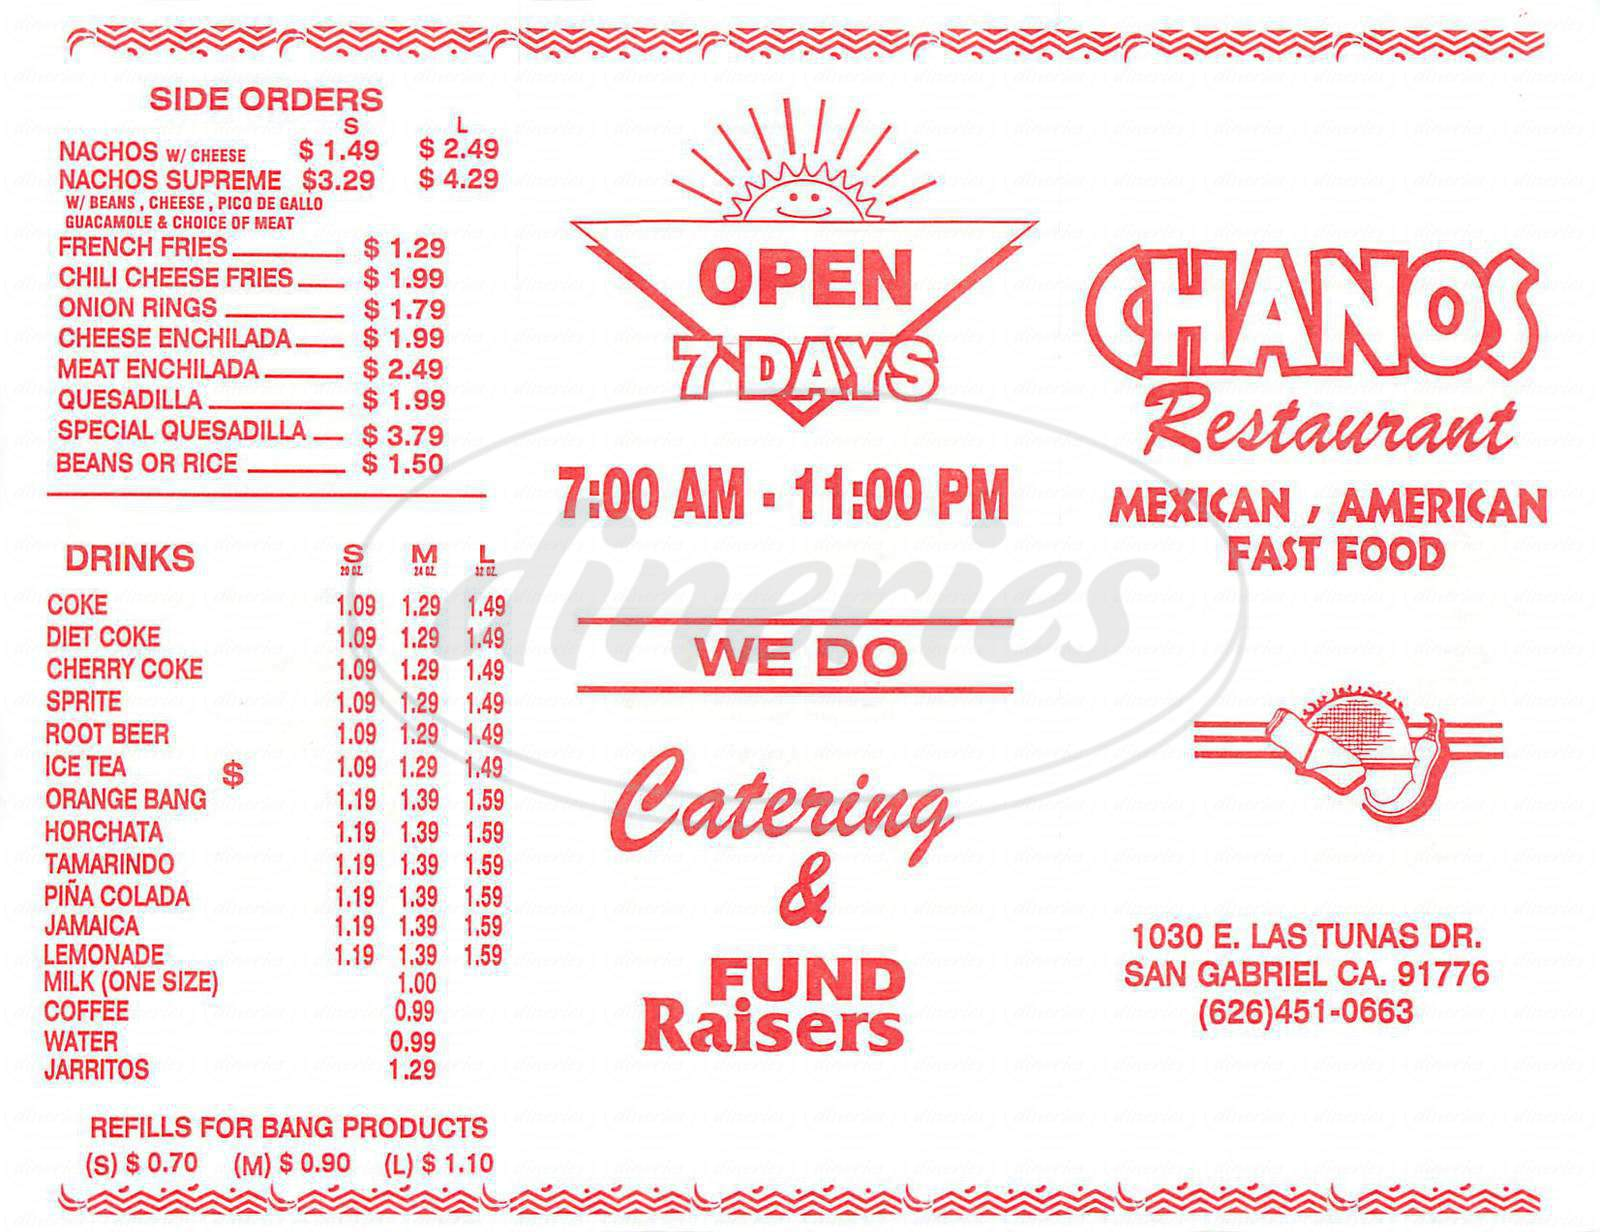 menu for Chanos Restaurant